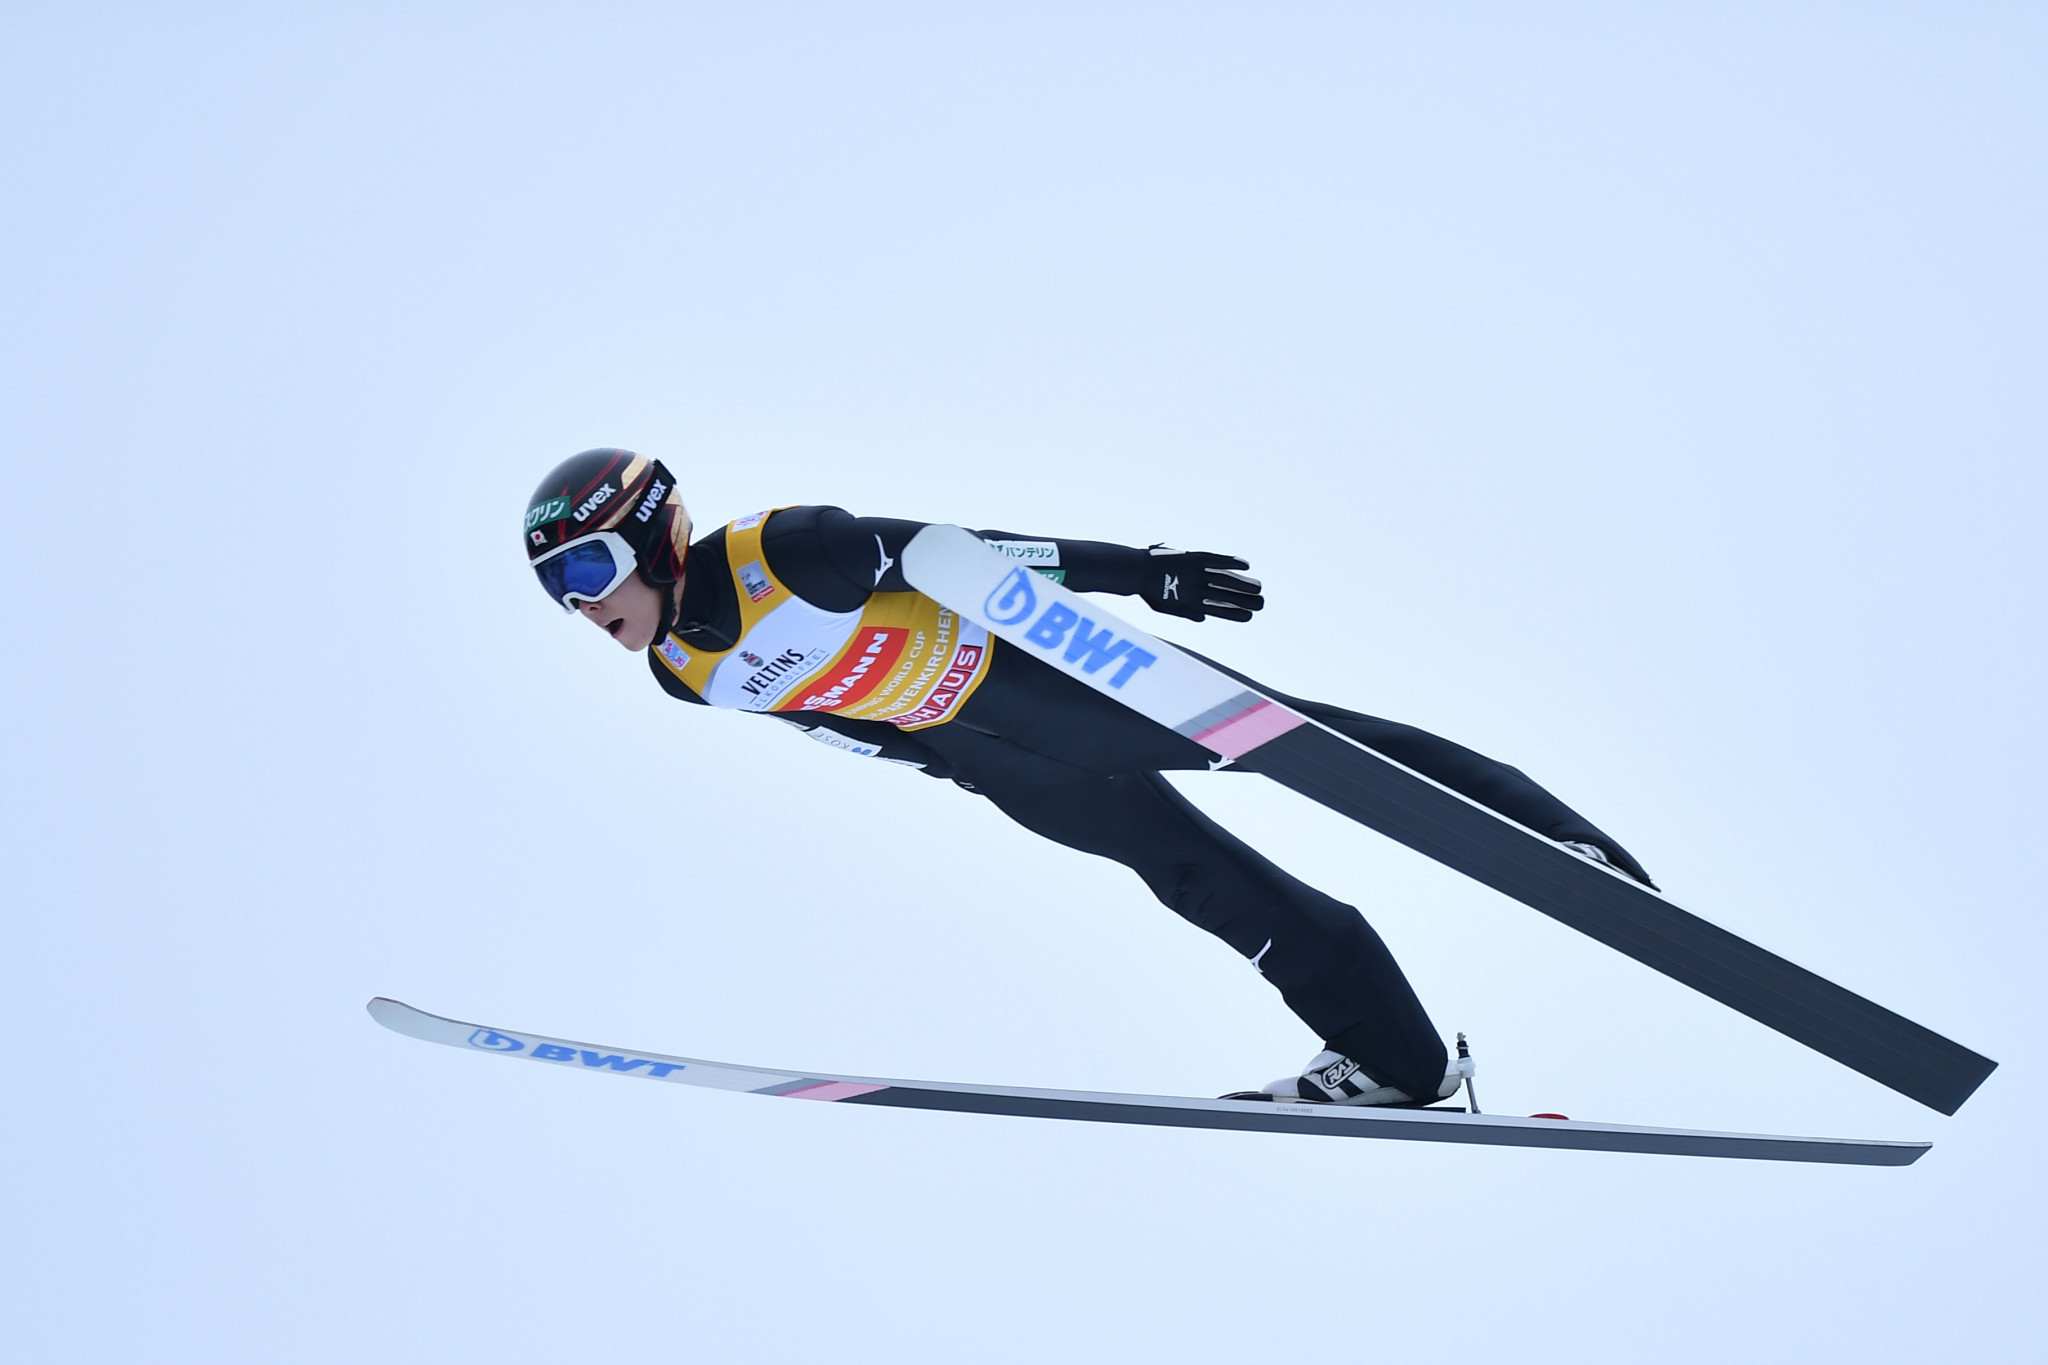 Ryōyū Kobayashi qualified in second after winning the first Four Hills event ©Getty Images